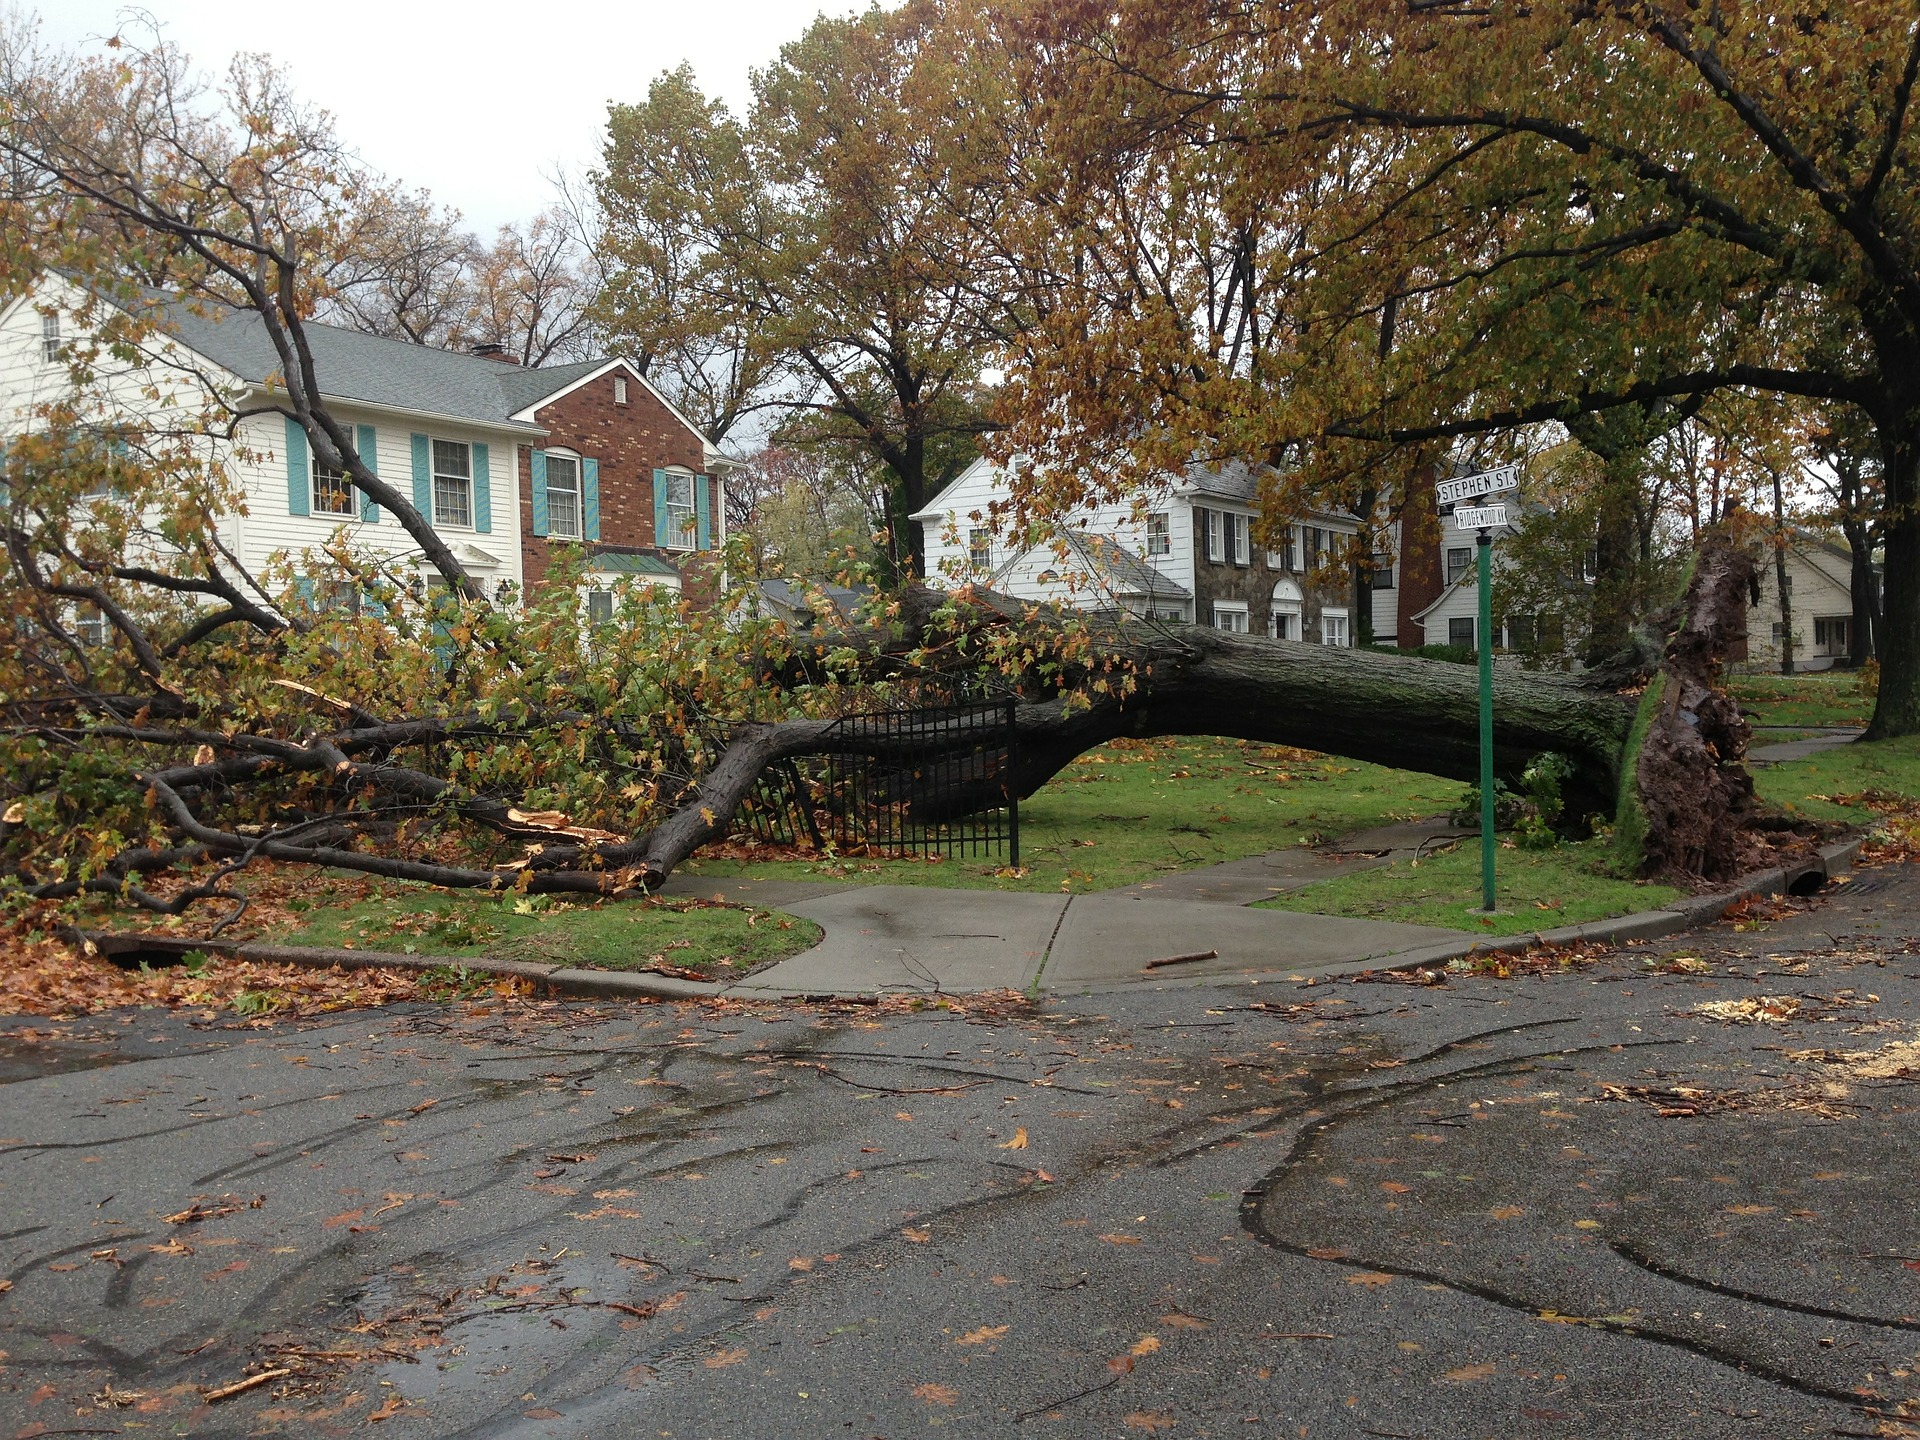 image of big tree fallen on house